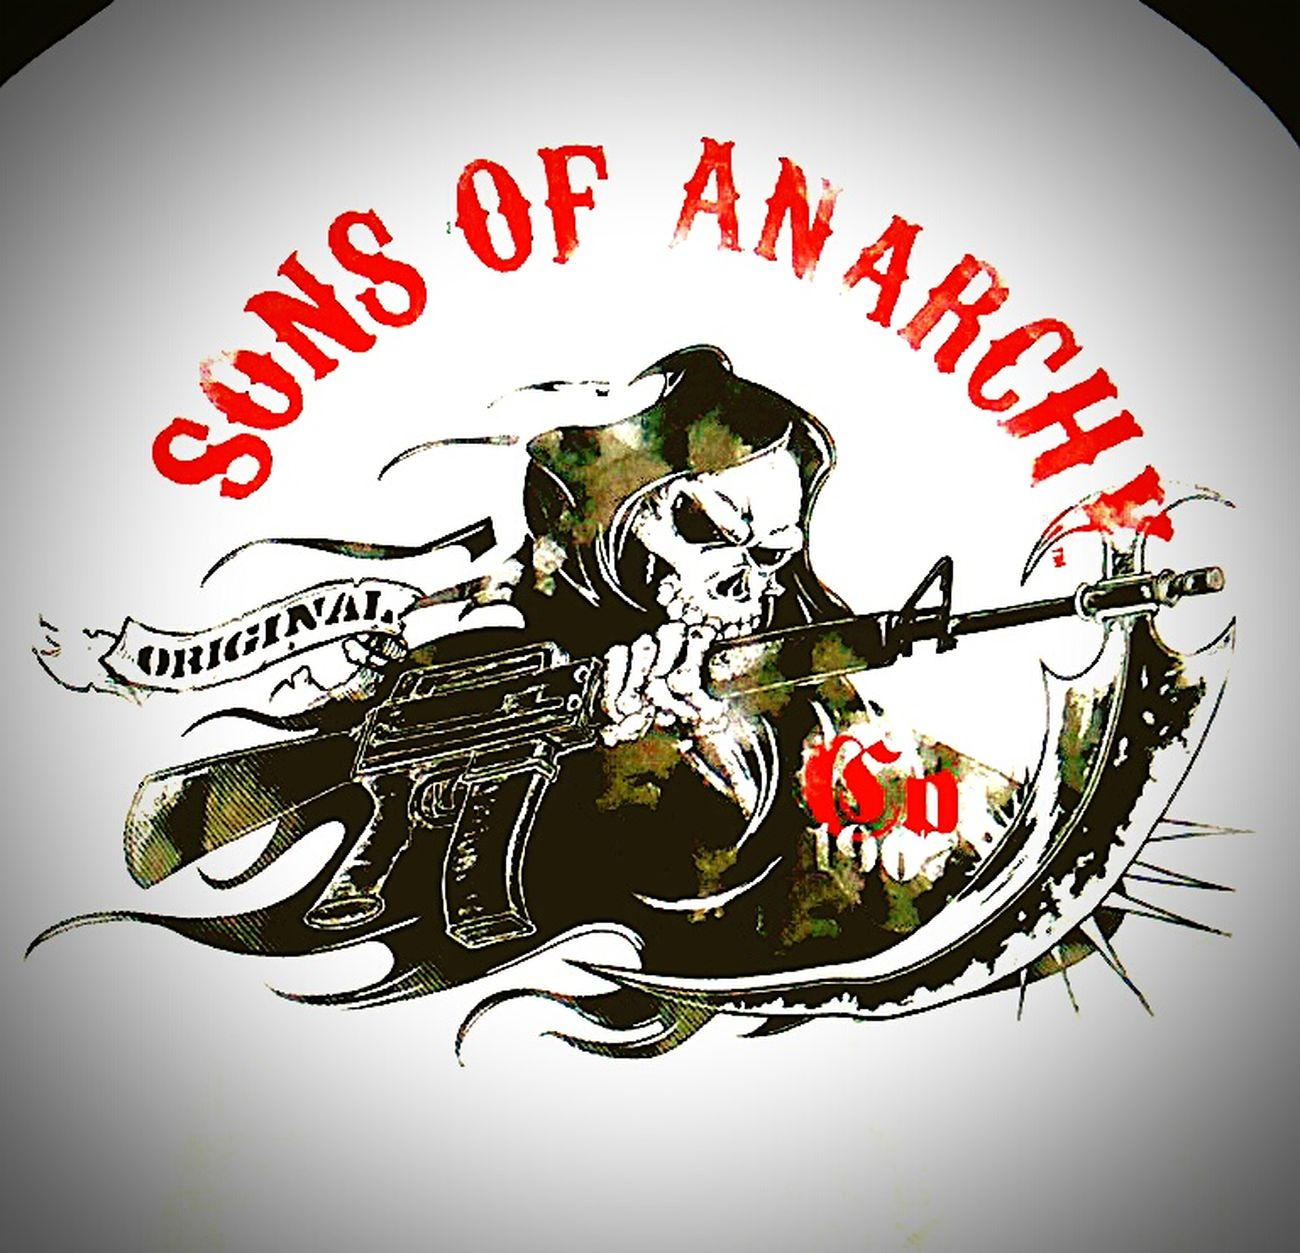 Sons Of Anarchy Samcro T Shirt Tshirt Tee Shirt T Shirts Redwood Grim Reaper  S.O.A. Sonsofanarchy Tshirtoftheday Tshirtmaniac Tshirts Tshirt♡ T Shirt T Shirt Collection Skull T Shirts Skulls. SkullTshirts Teeshirts Skulls Skullporn Skulls♥ Skullshit Skullduggery